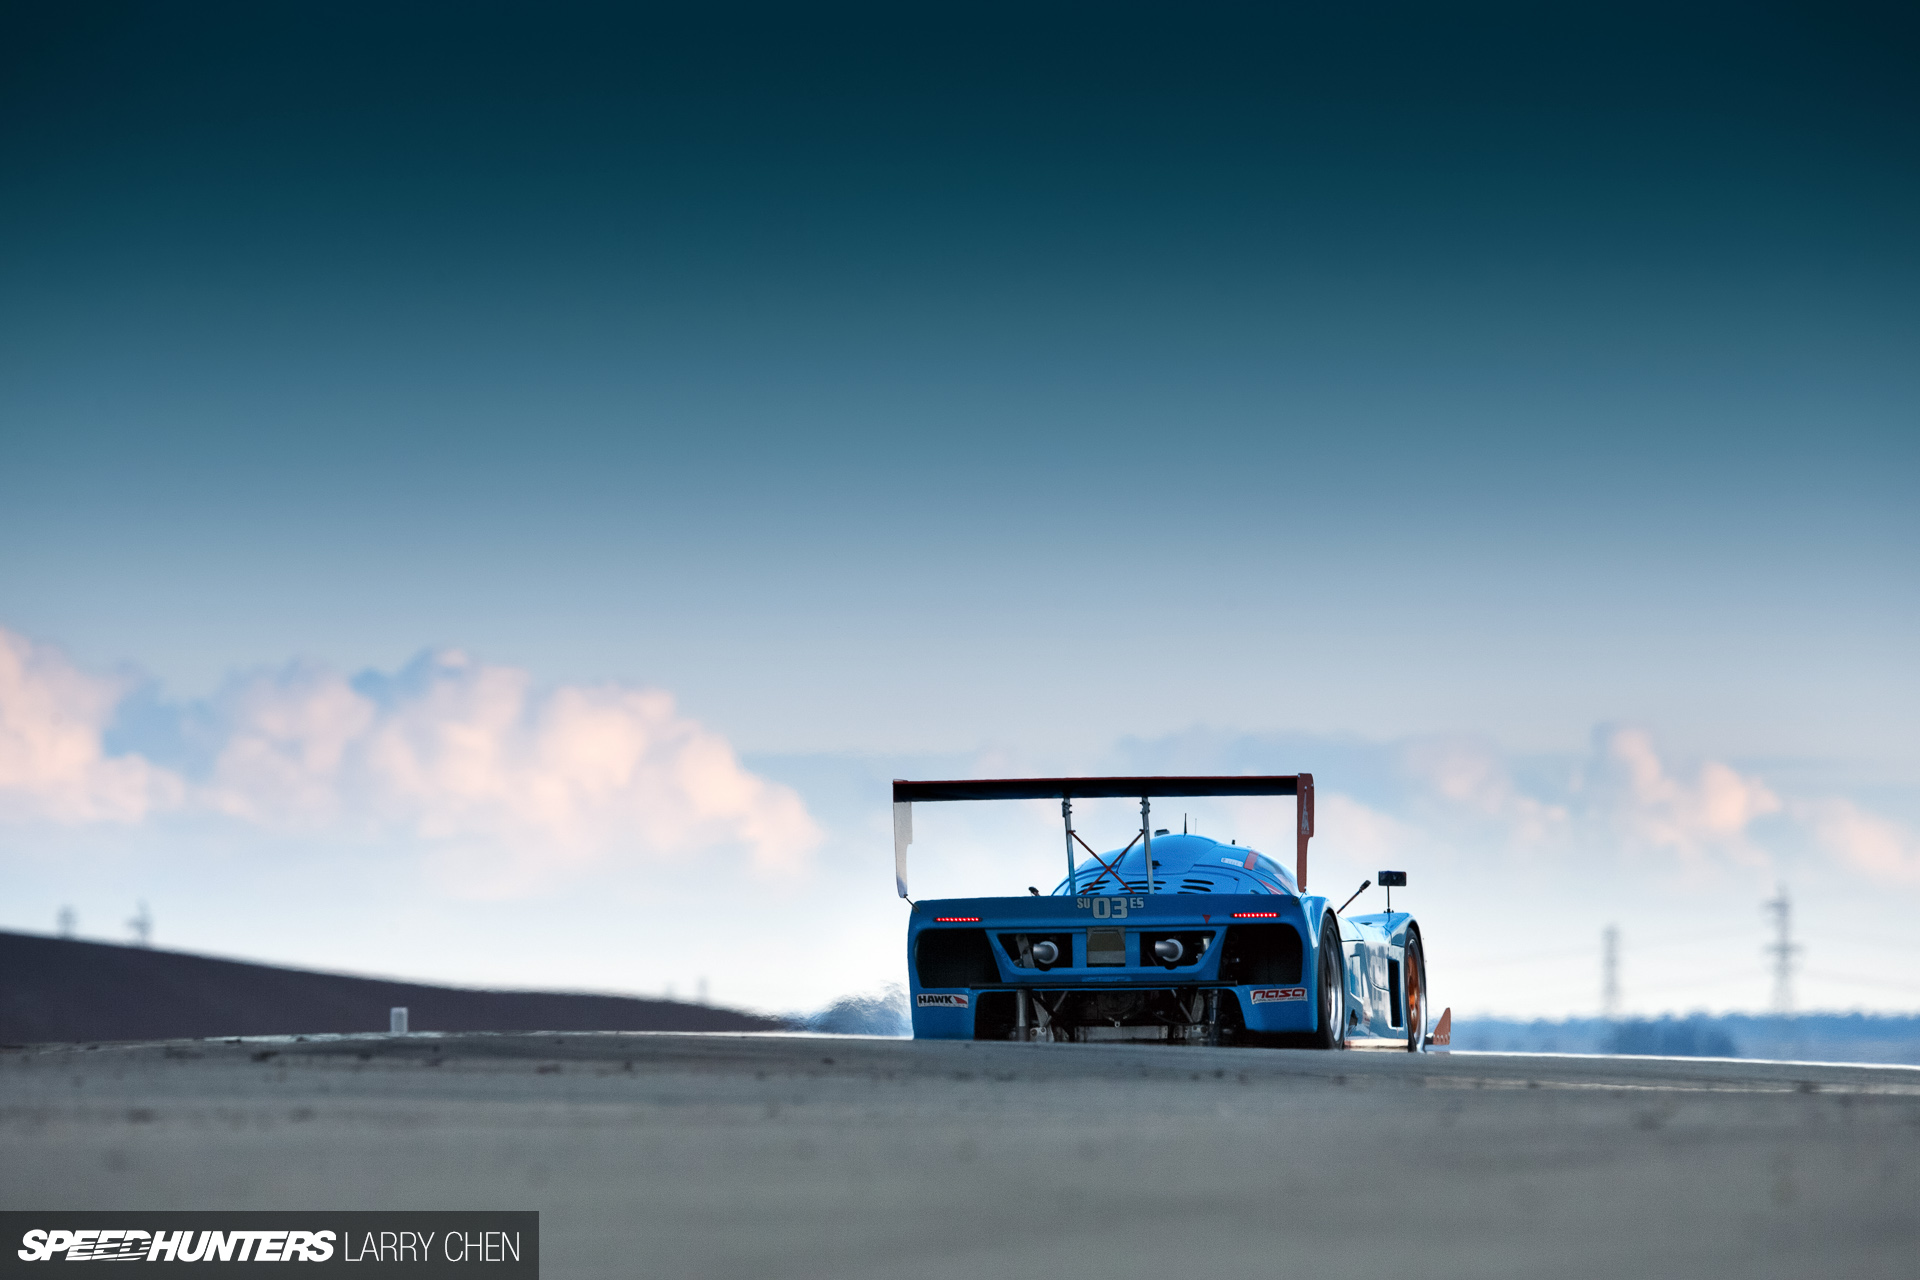 Superlite_SLC_Blue-Orange-Trim_Larry_Chen_Speedhunters_25hours_of_thunderhill_13-3_RearFarH.jpg